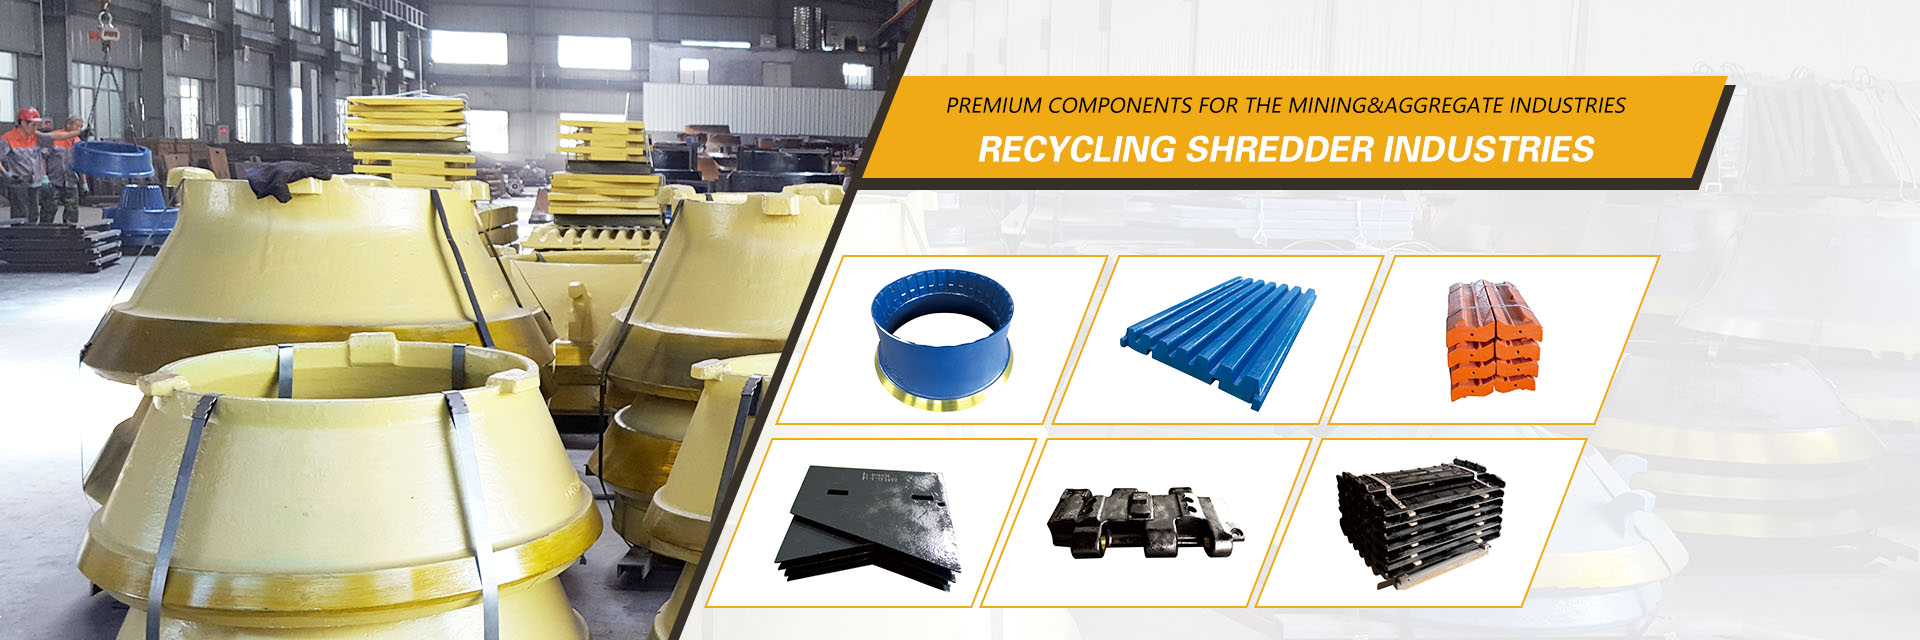 Recycling Shredder Industries